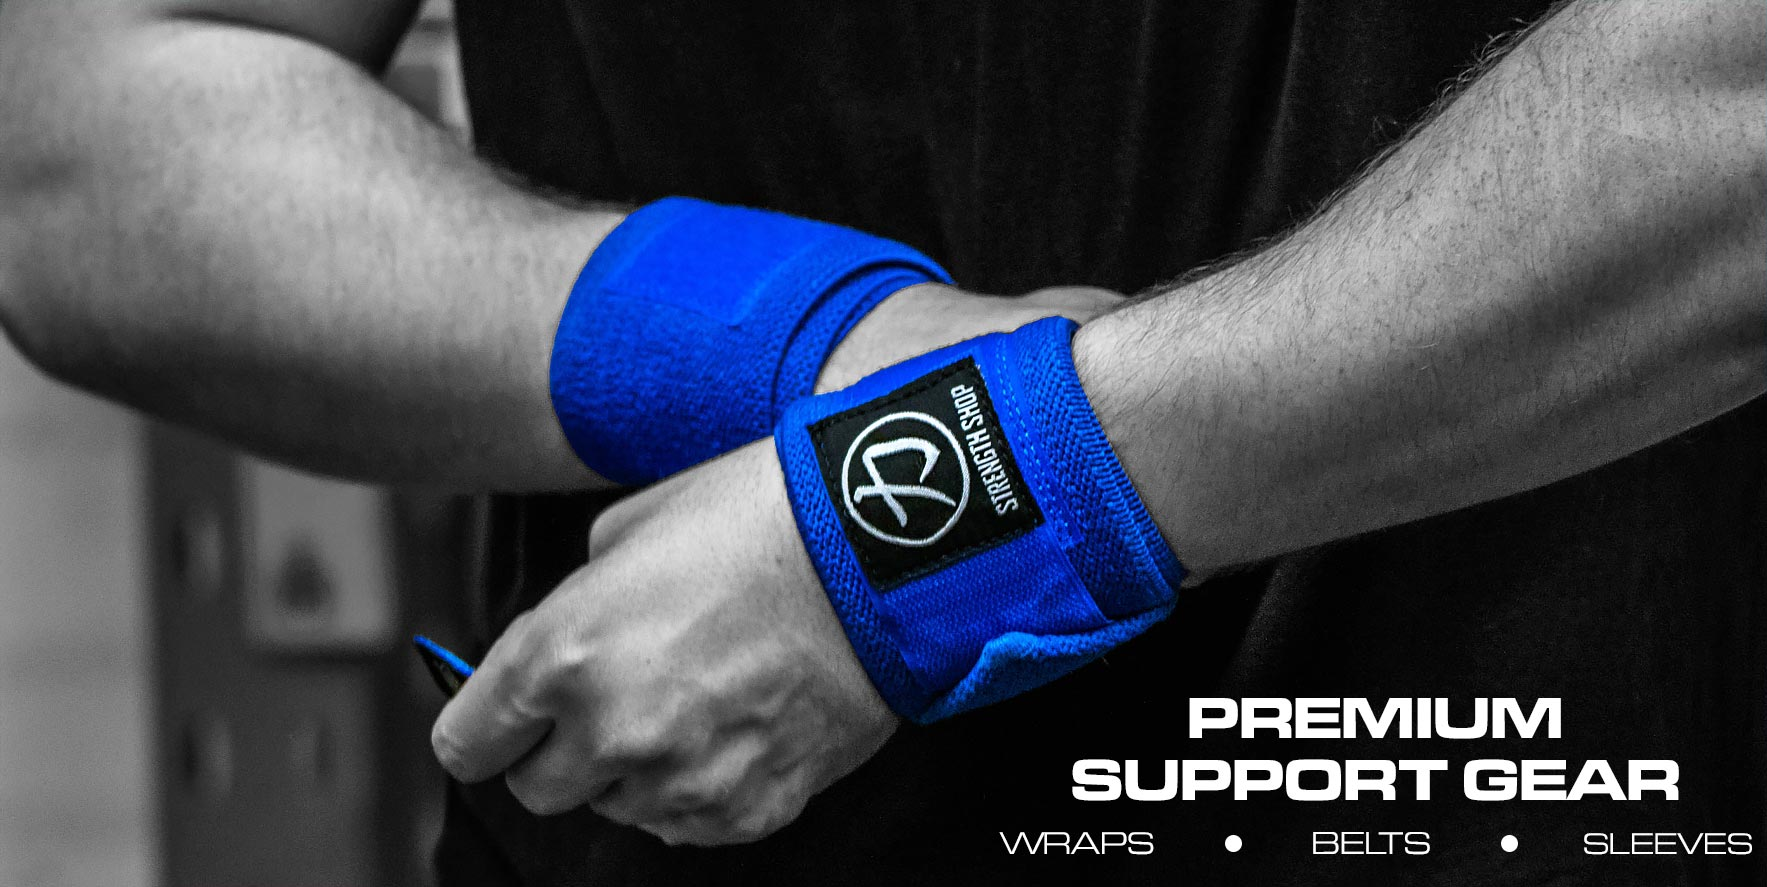 Premium Support Gear Belts Sleeves Wraps